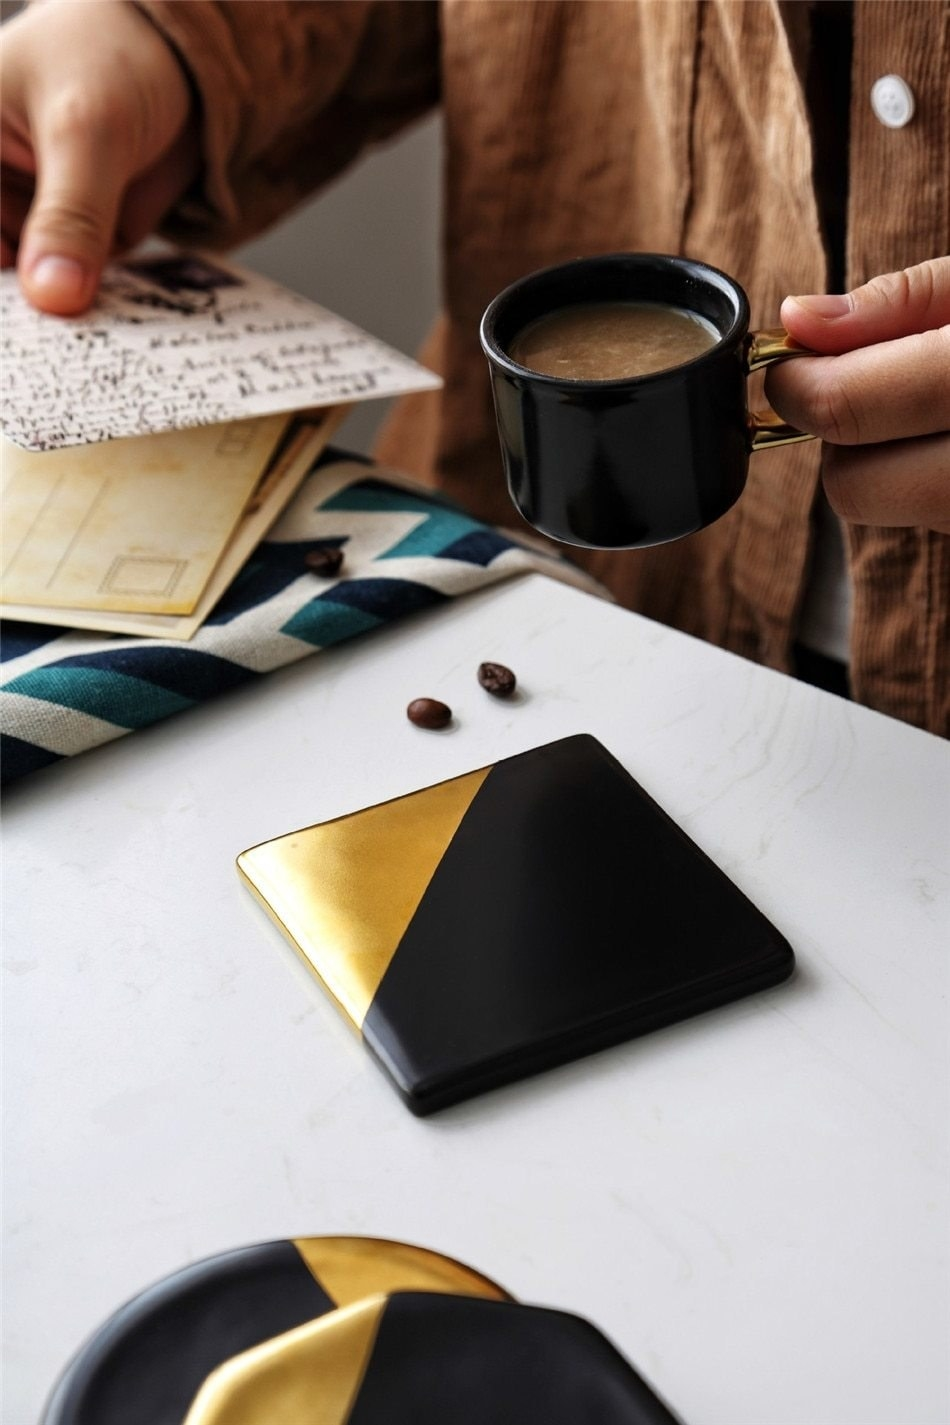 a square black coaster with a gold triangle painted on it